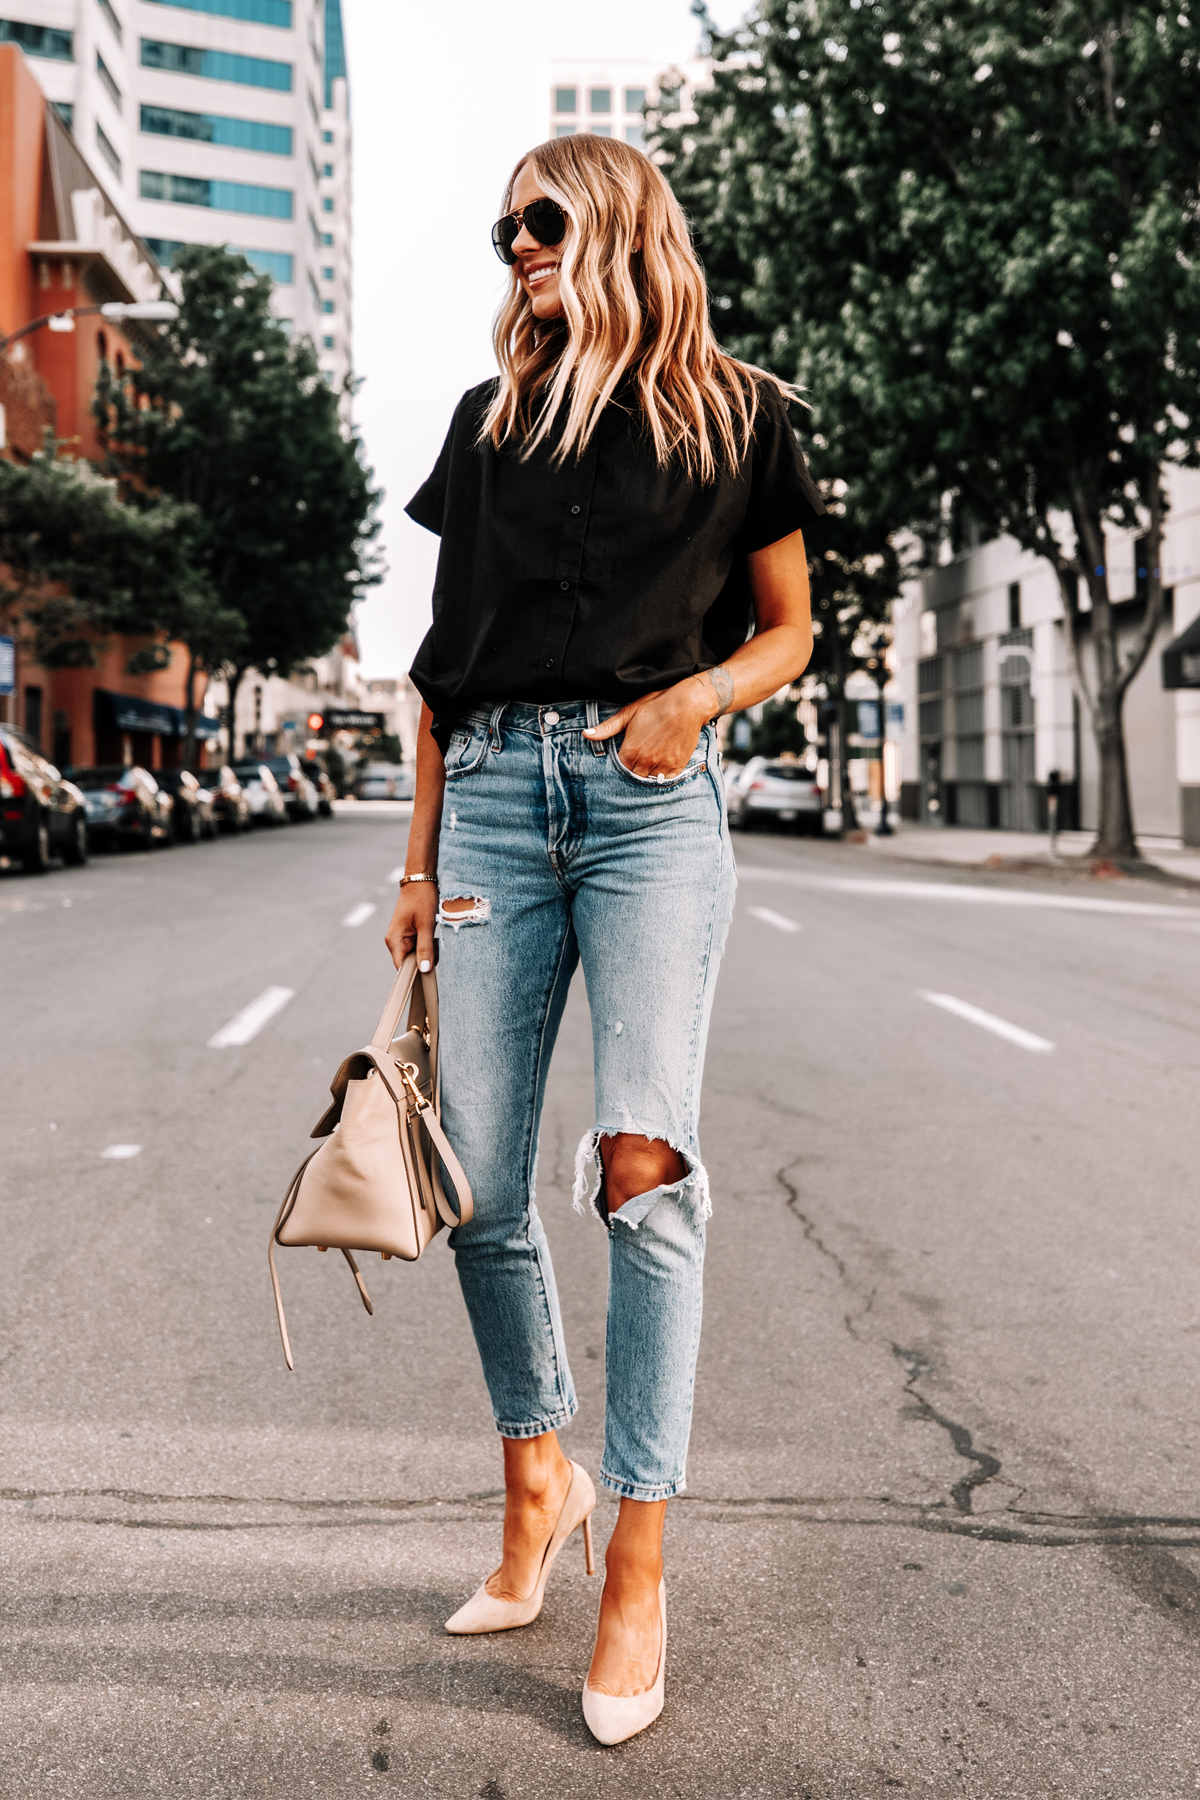 Fashion Jackson Wearing Everlane Black Short Sleeve Button Down Shirt Levis Ripped Jeans Jimmy Choo Romy Nude Pumps 3